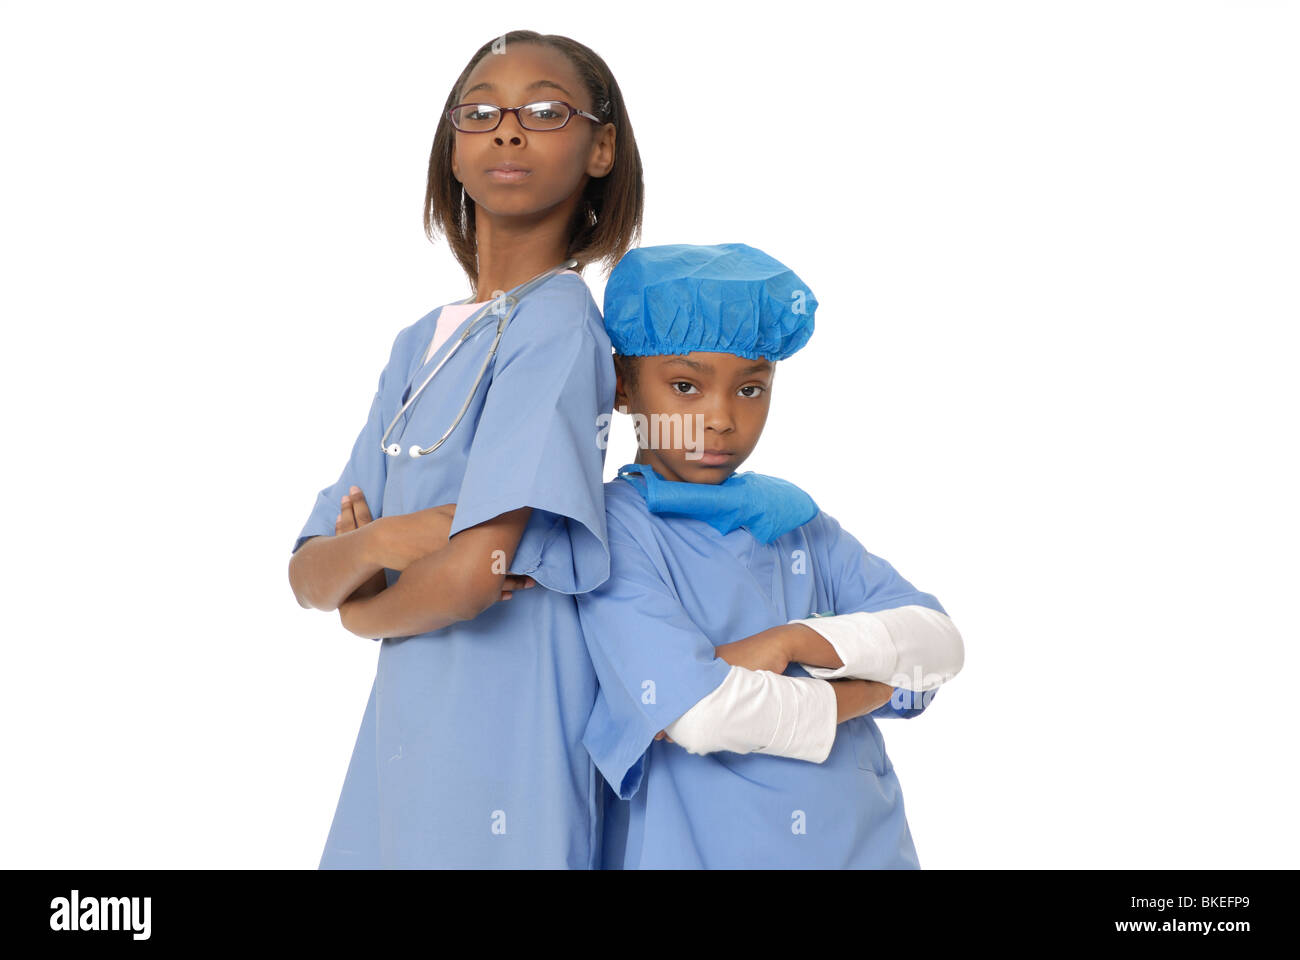 Two girls, ten and six year old sisters, dressed as doctors. - Stock Image